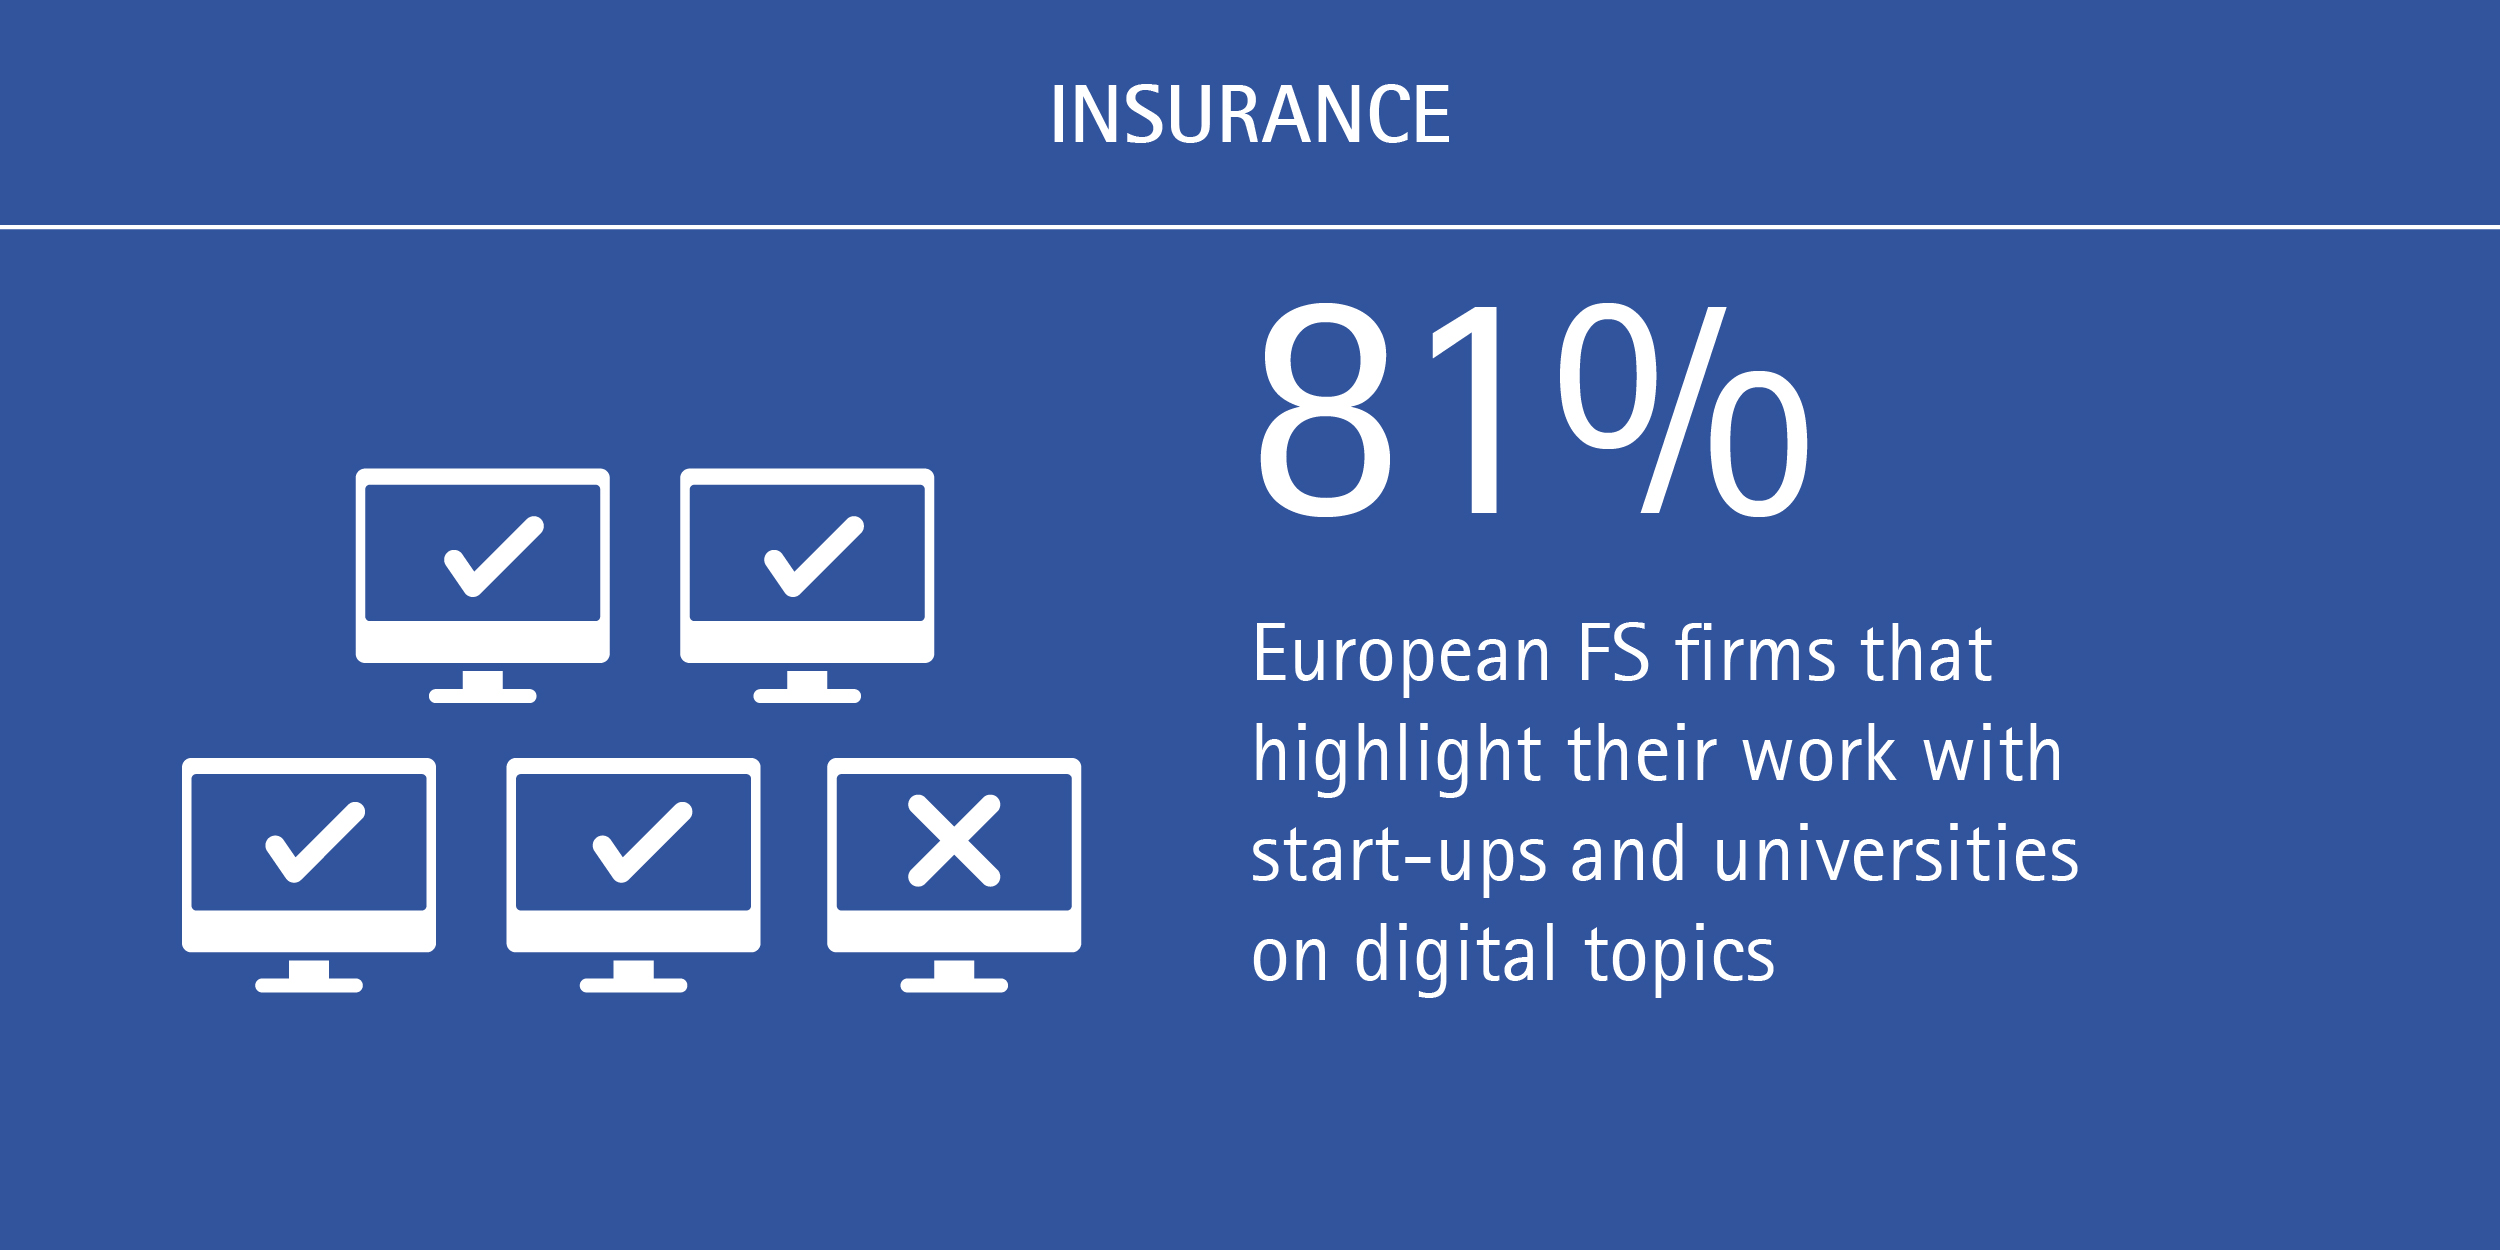 European banks and insurers need to close the digital production gap_Accenture INS (Figure 2)